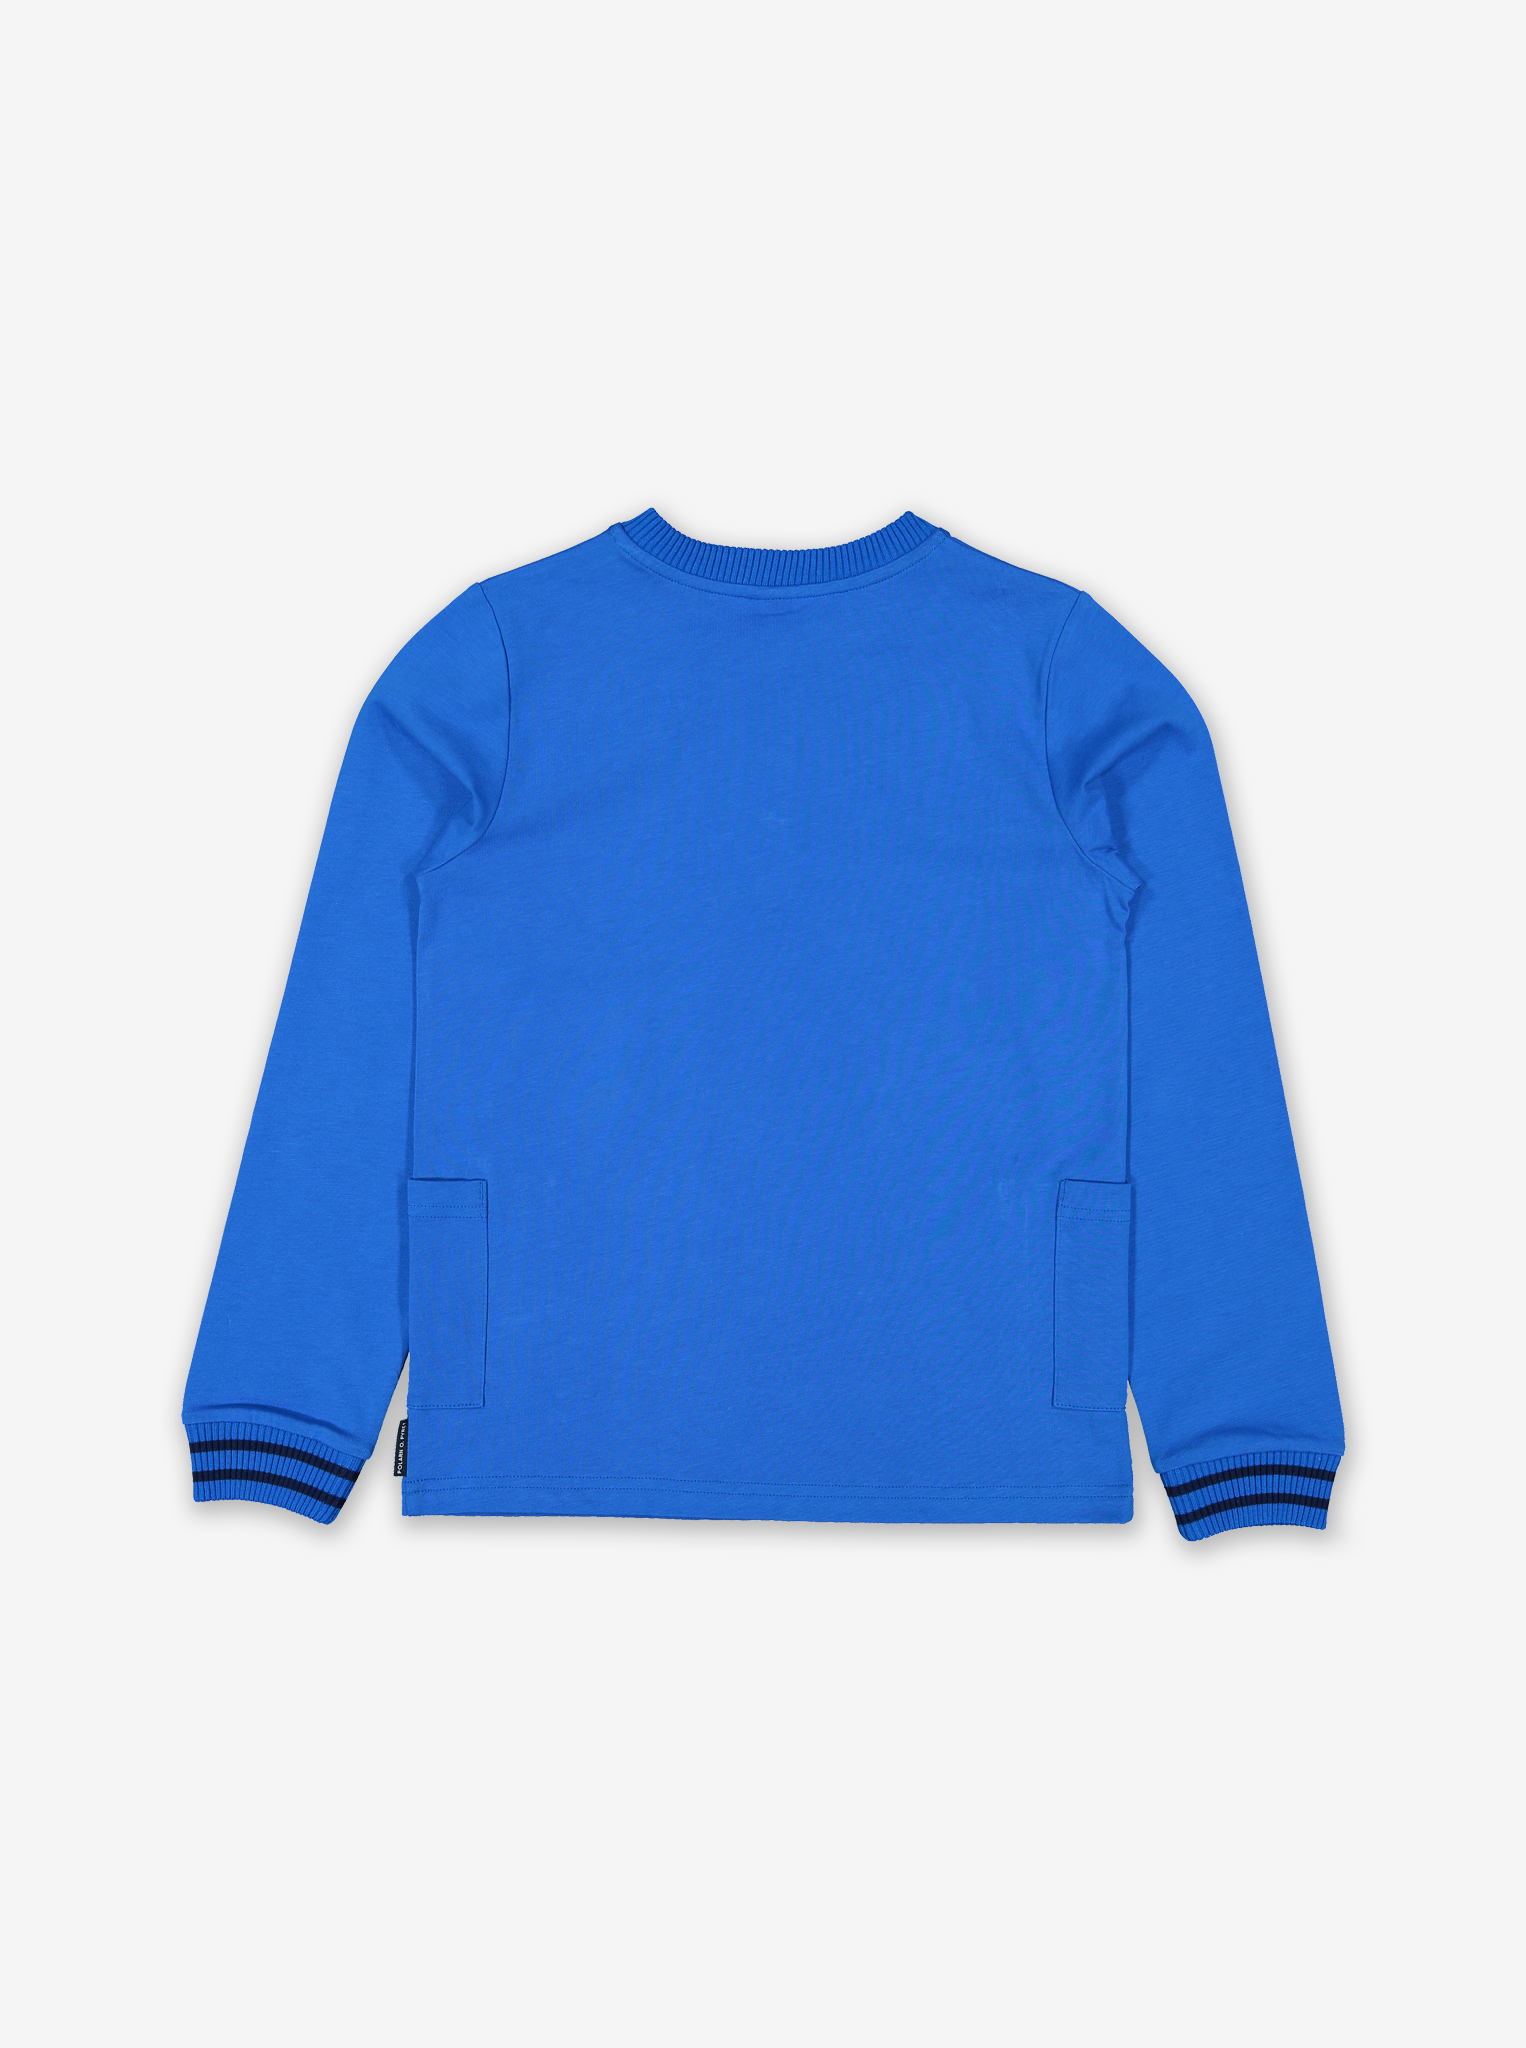 Kids Pocket Top -Boy-6-12y-Blue